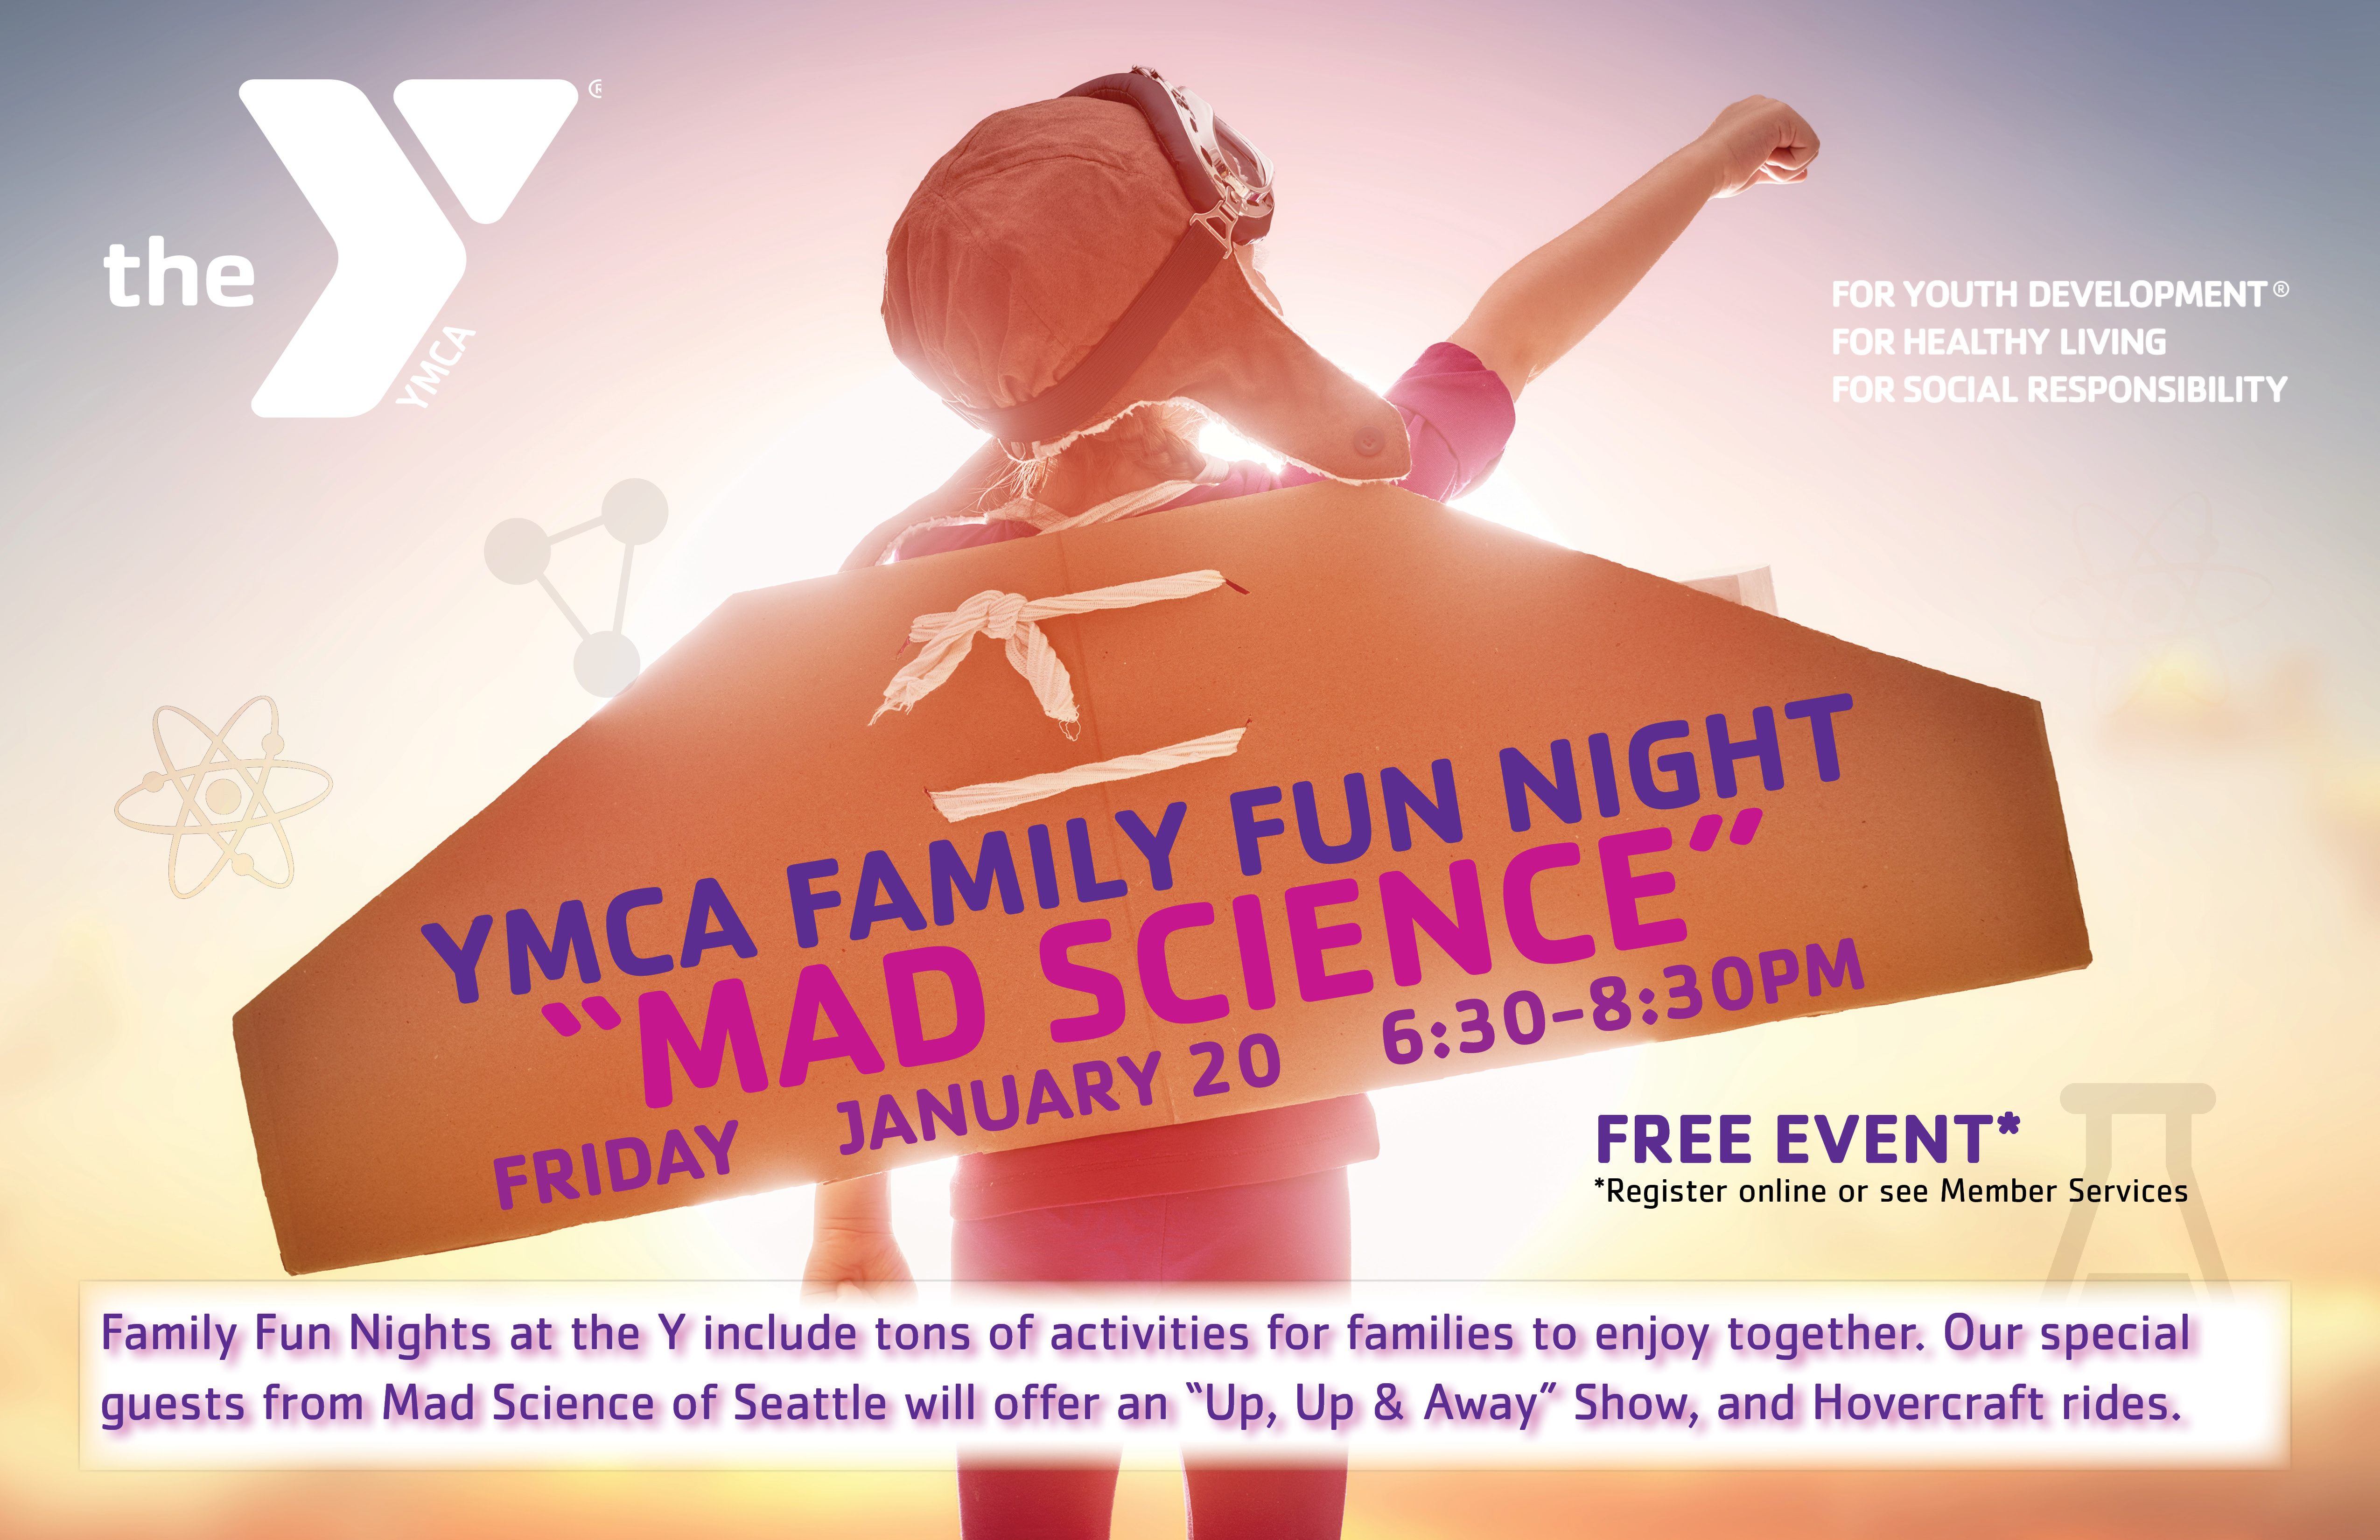 Join Us For Family Fun Night On Friday January 20th From 630 830pm Mad Science Of Seattle Will As Our Special Guests And Run Activities